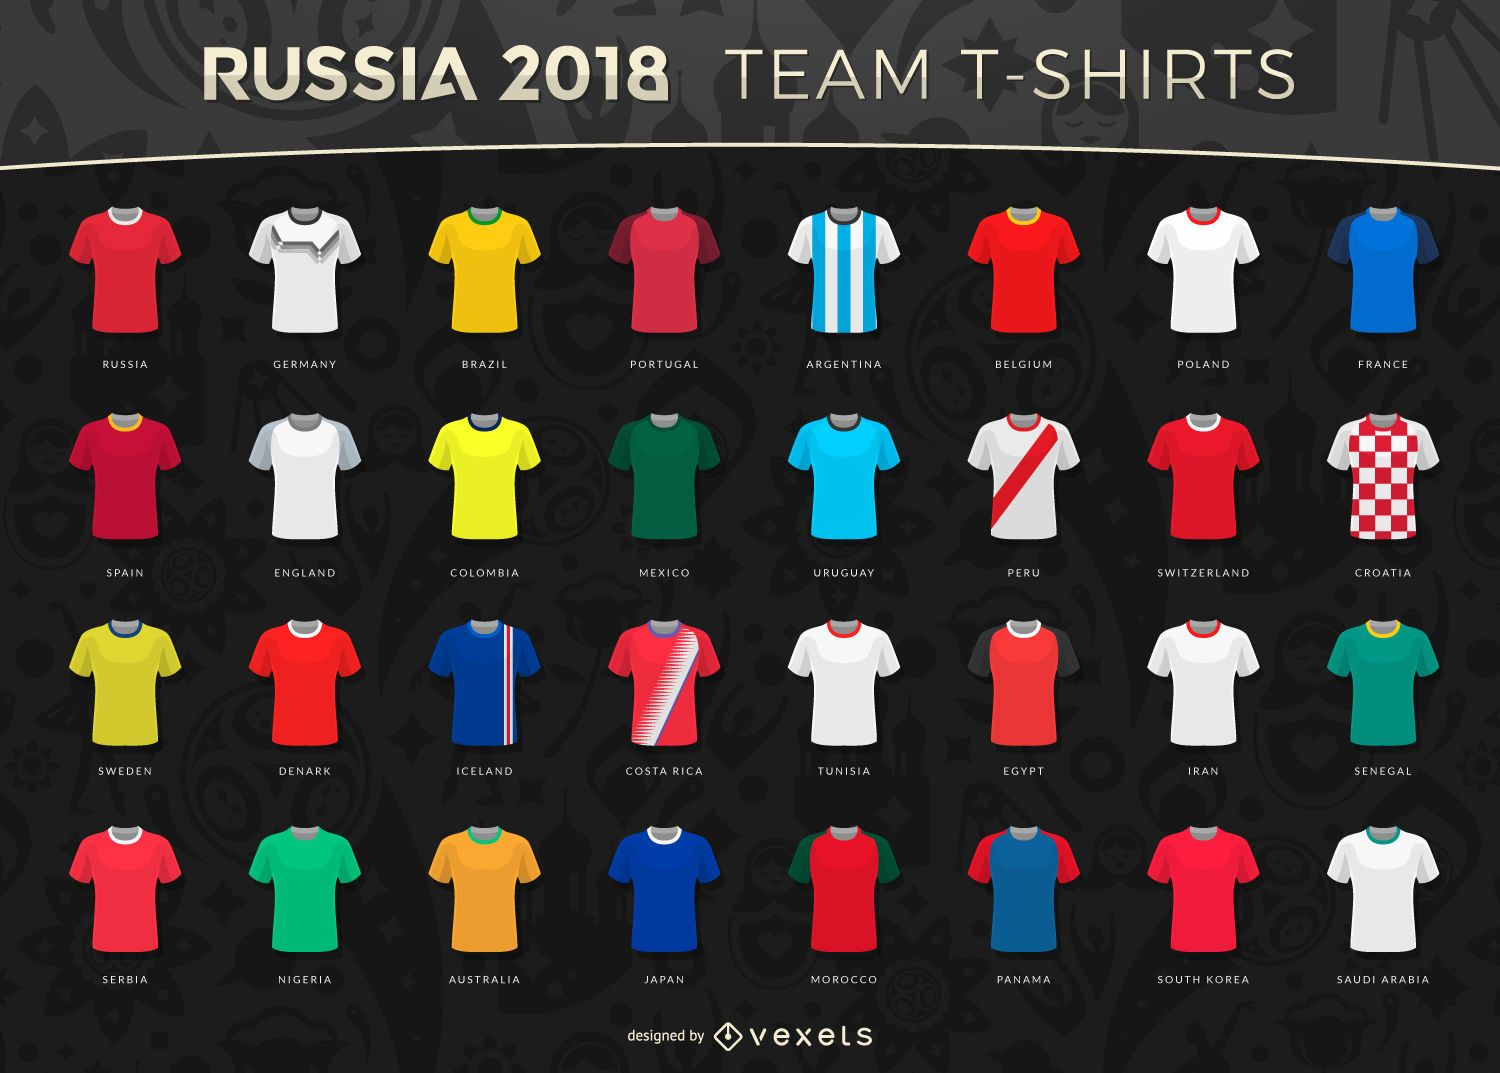 Russia 2018 World Cup team t-shirts